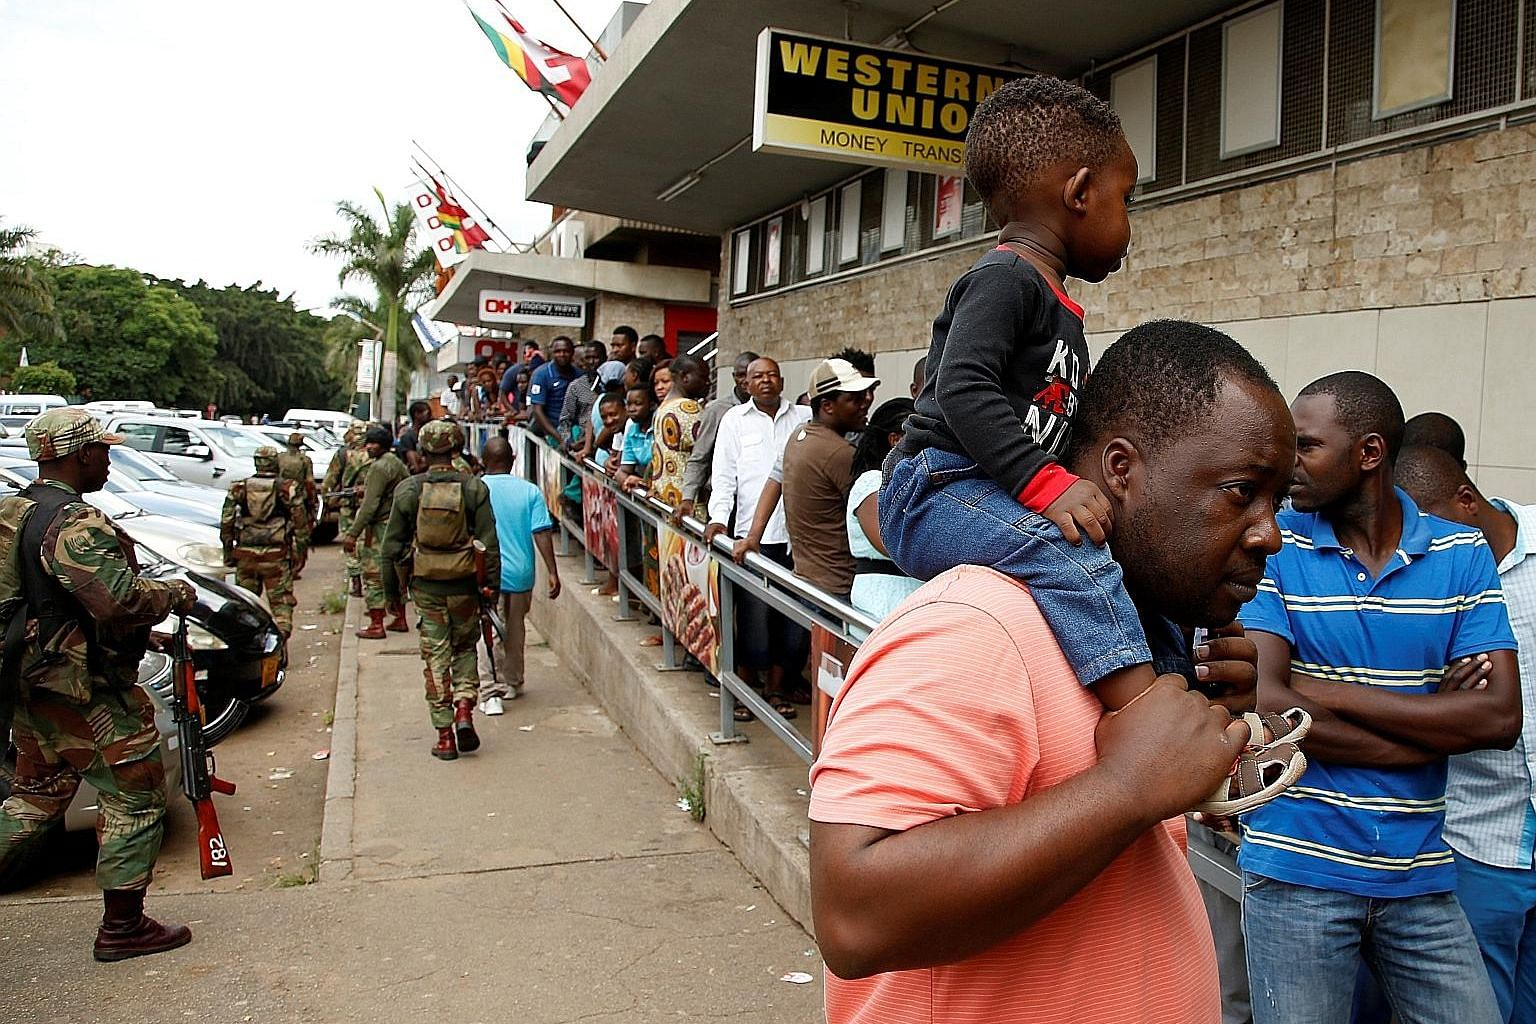 Armed soldiers patrolling the streets as people queue at a supermarket in Harare, Zimbabwe, yesterday. The capital was gripped by three days of protests after President Emmerson Mnangagwa increased the price of fuel by more than 150 per cent. Many ac